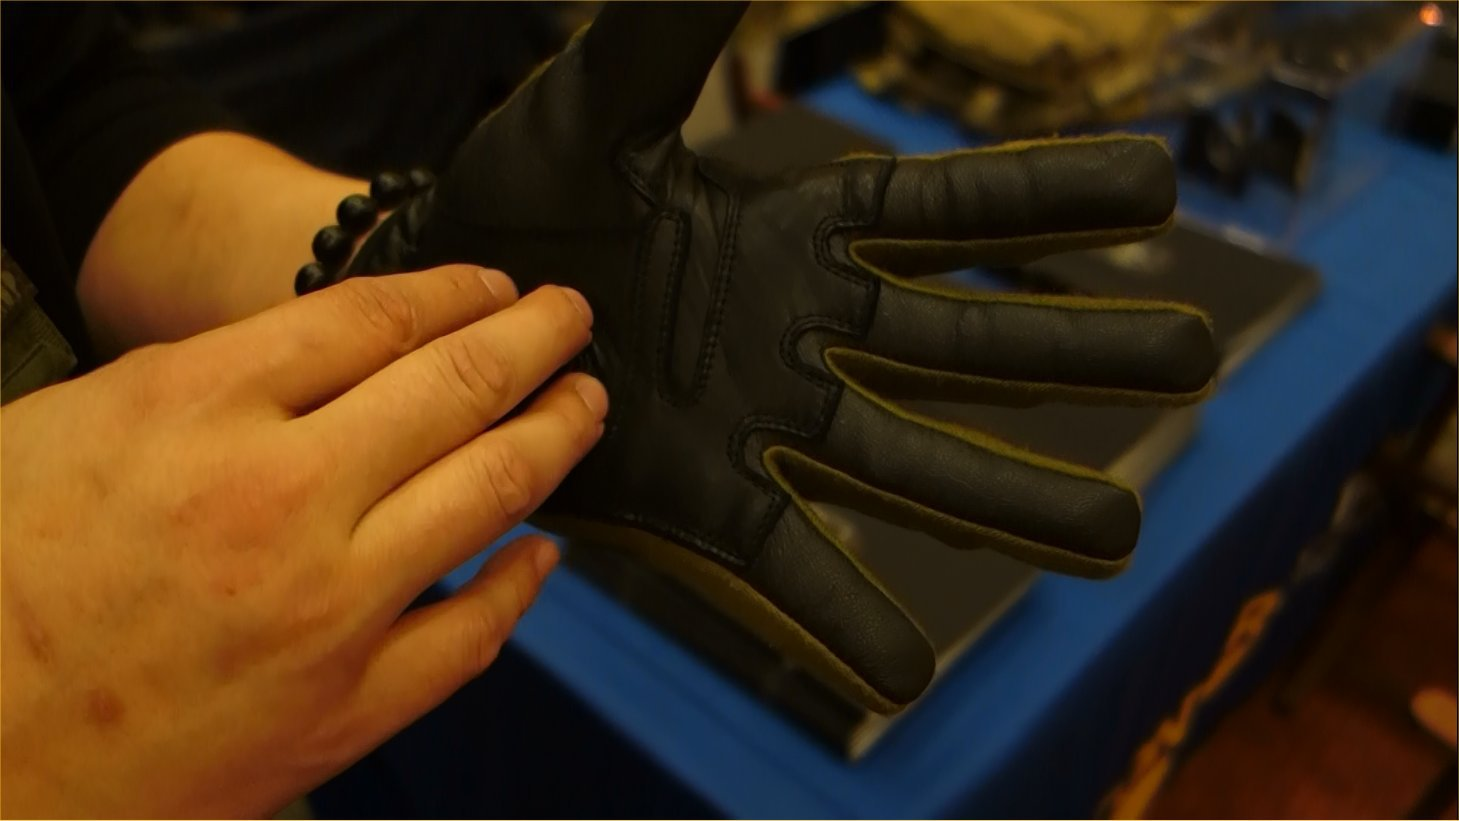 Condor Outdoor Syncro Tactical Glove Tactical Shooting Gloves with HK251 Touchtec Nanotechnology Leather Andy Chen SHOT Show 2013 David Crane DefenseReview.com DR 2 Condor Syncro Hard Knuckle Tactical Glove with TouchTec Nanotechnology: Touchscreen Friendly Tactical Shooting Gloves Allow You to Operate Smartphone and Tablet Computer! (Video!)